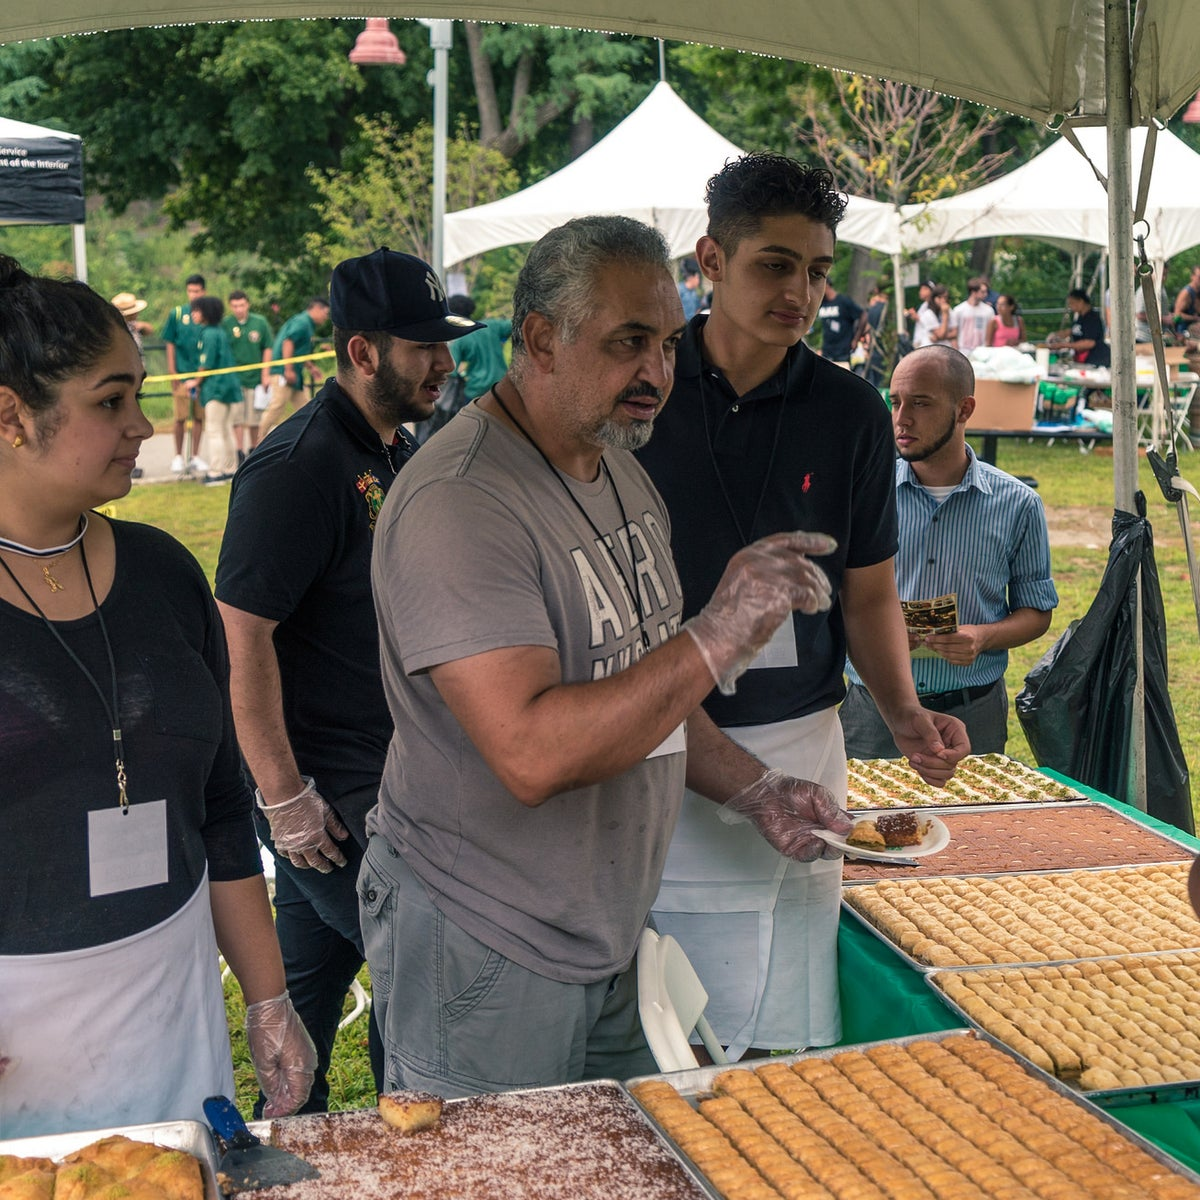 Members of the Nablus Sweets bakery during the centennial of the Great Falls Park, Paterson, NJ.